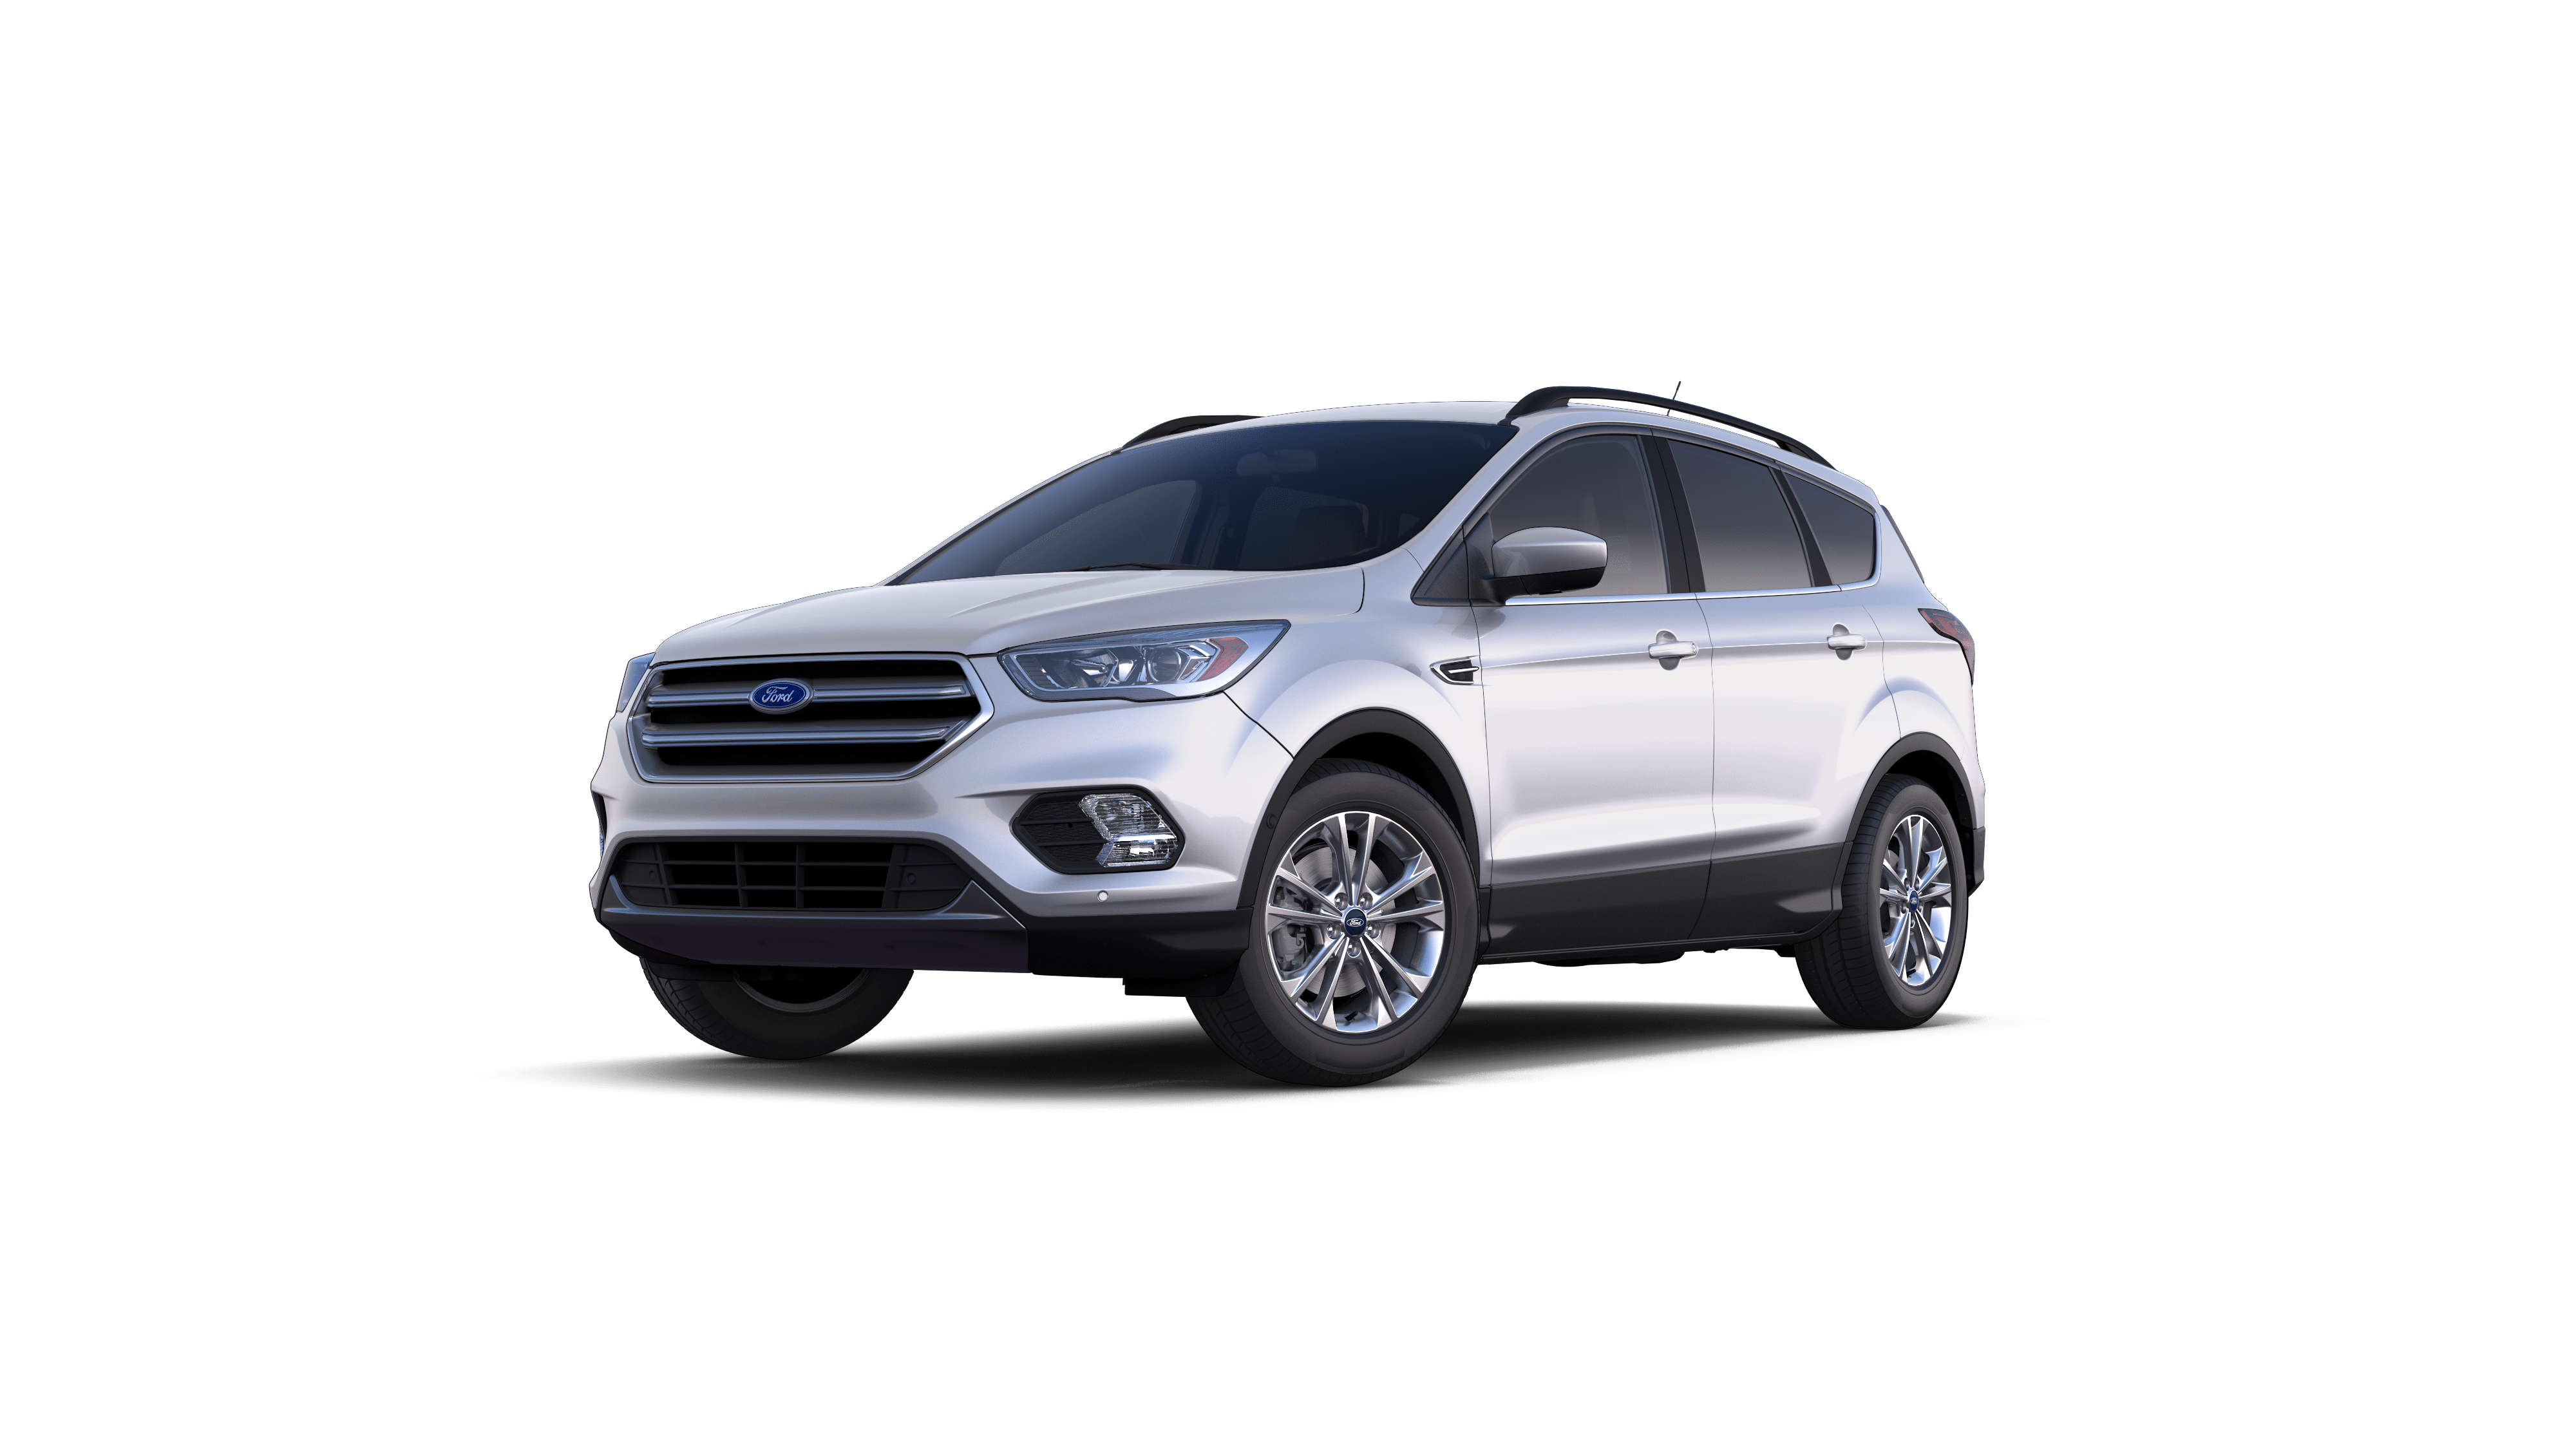 2019 Ford Escape Vehicle Photo in Quakertown, PA 18951-1403